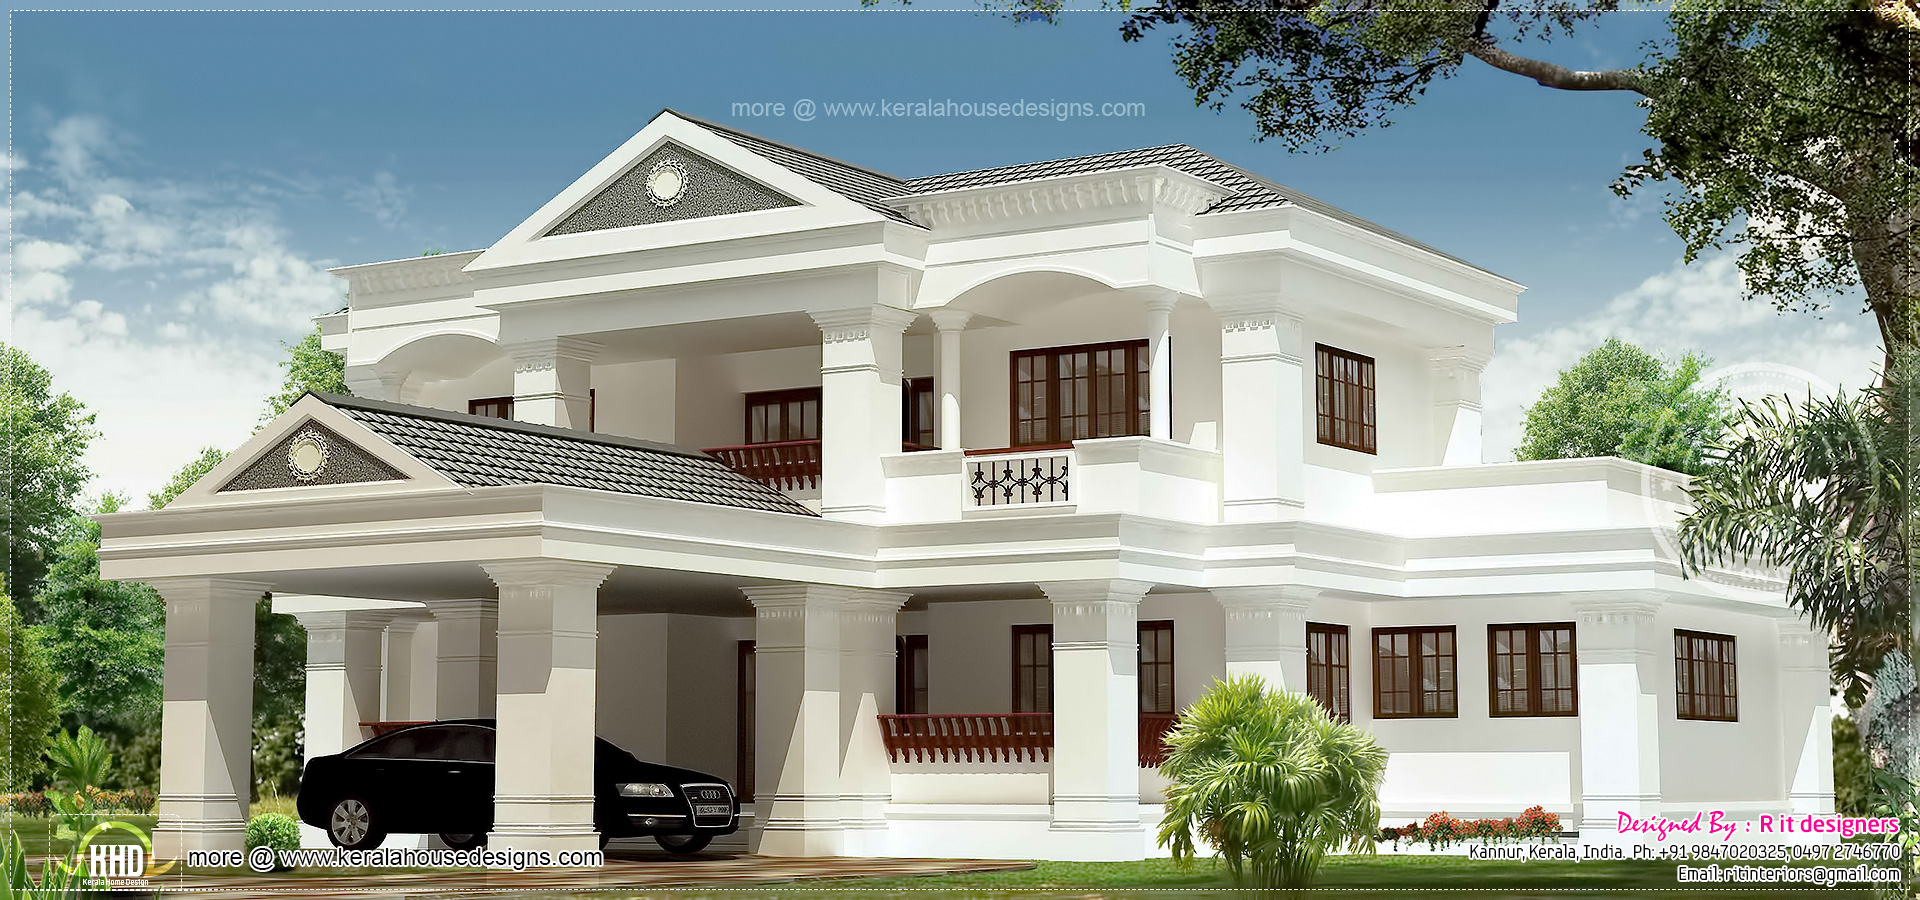 3100 luxury 5 bhk villa exterior kerala home for 3000 sq ft house cost